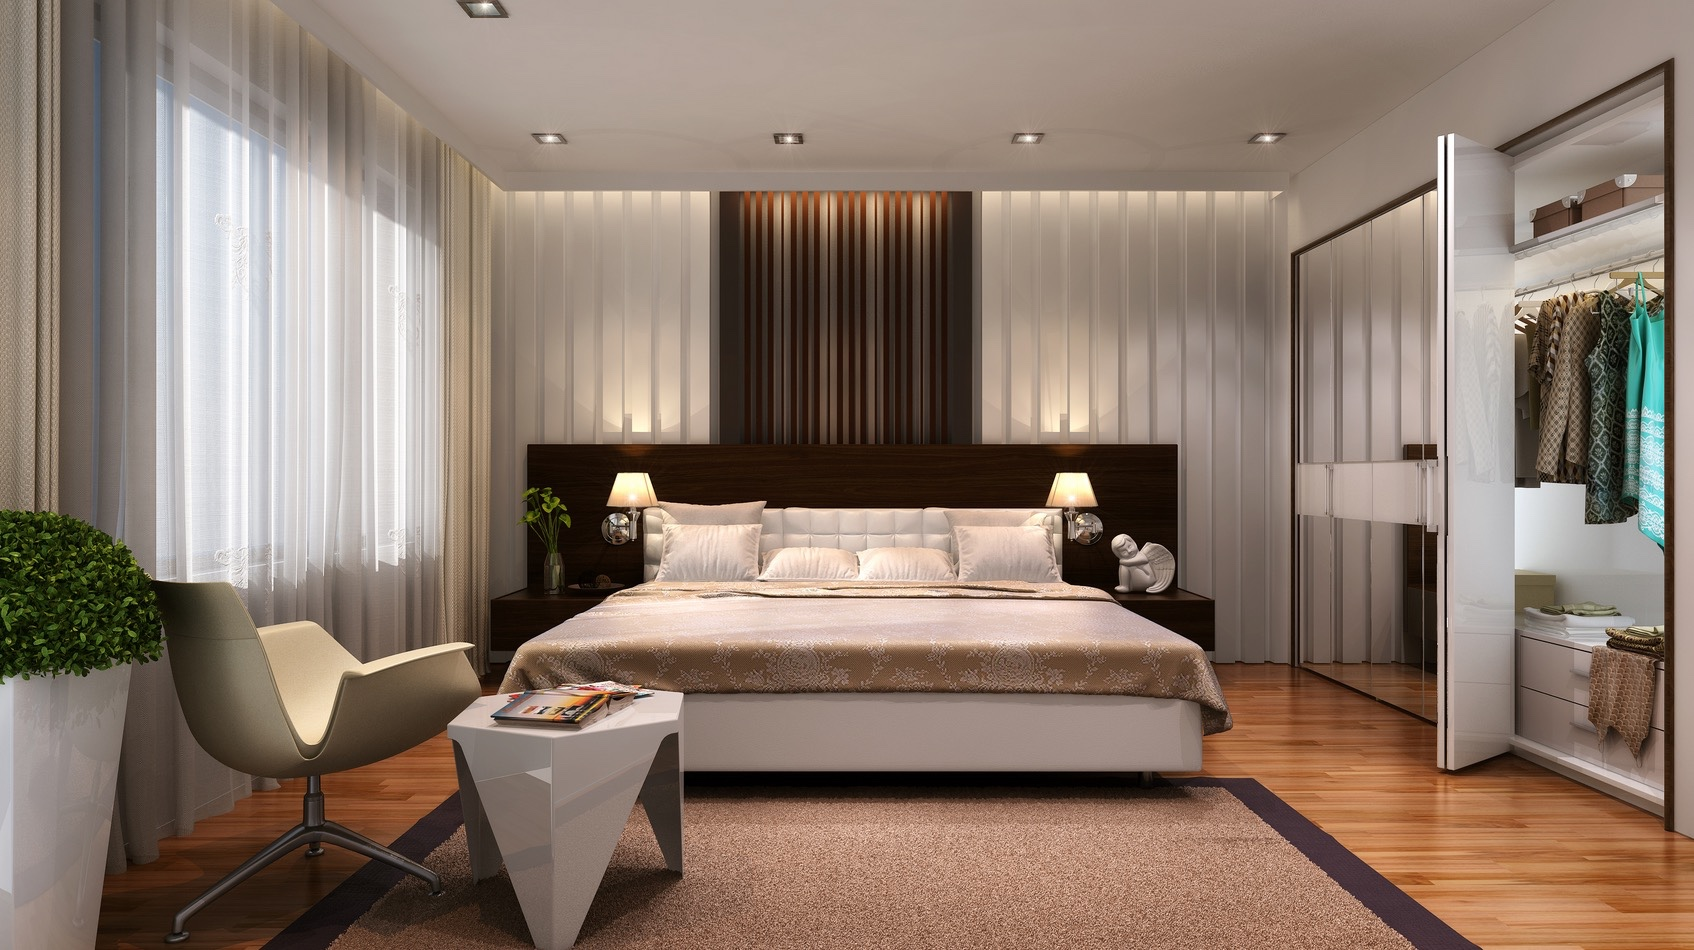 21 cool bedrooms for clean and simple design inspiration for Cool small bedroom designs